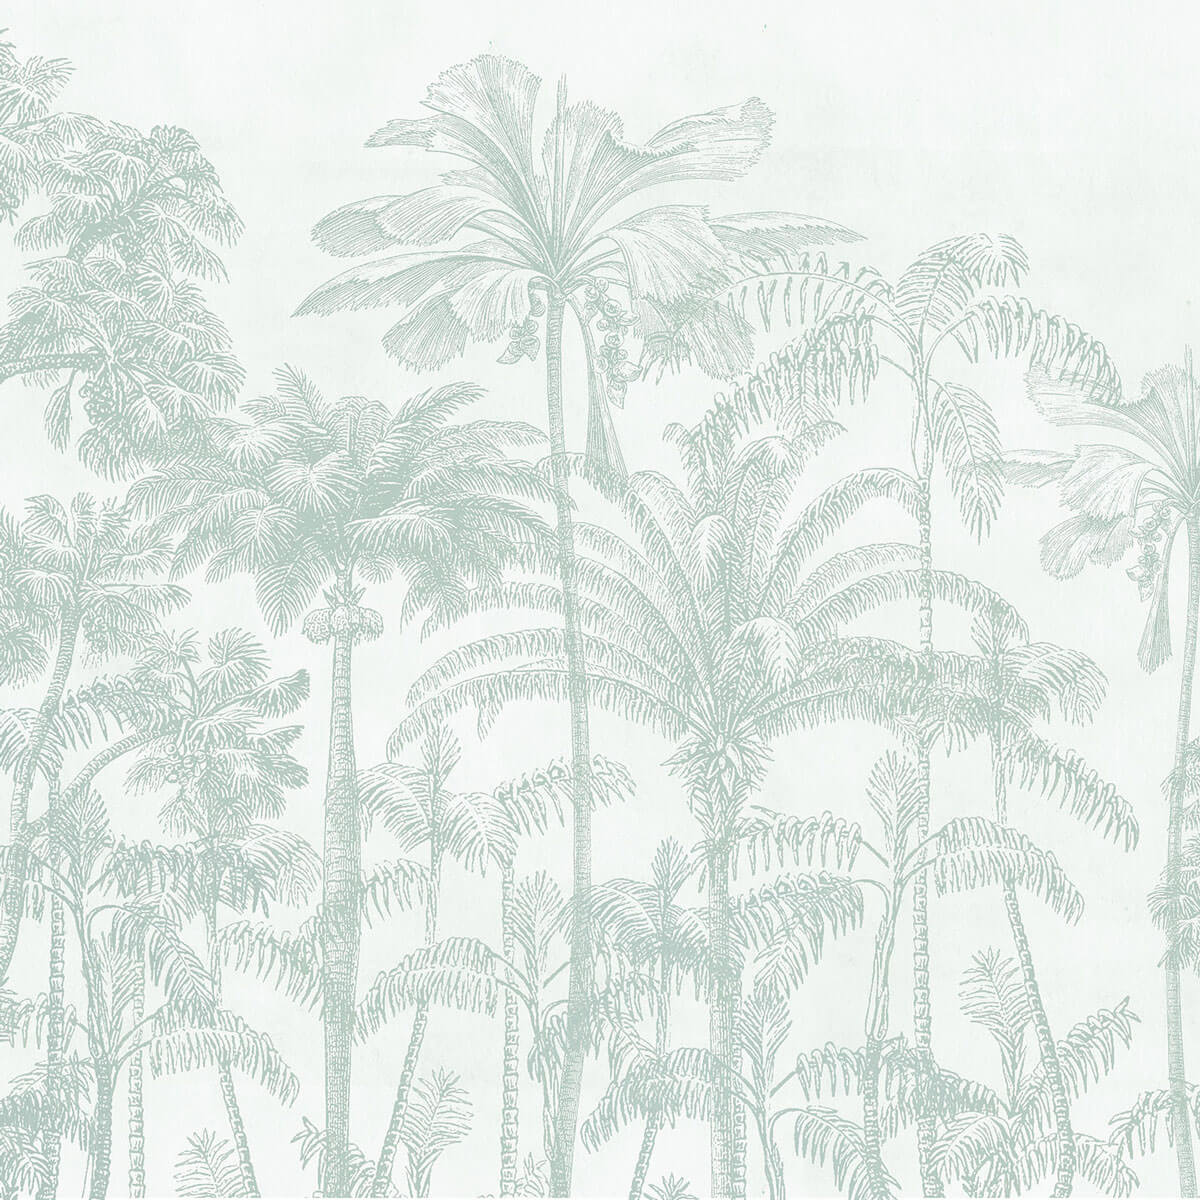 Painel sketch tropical